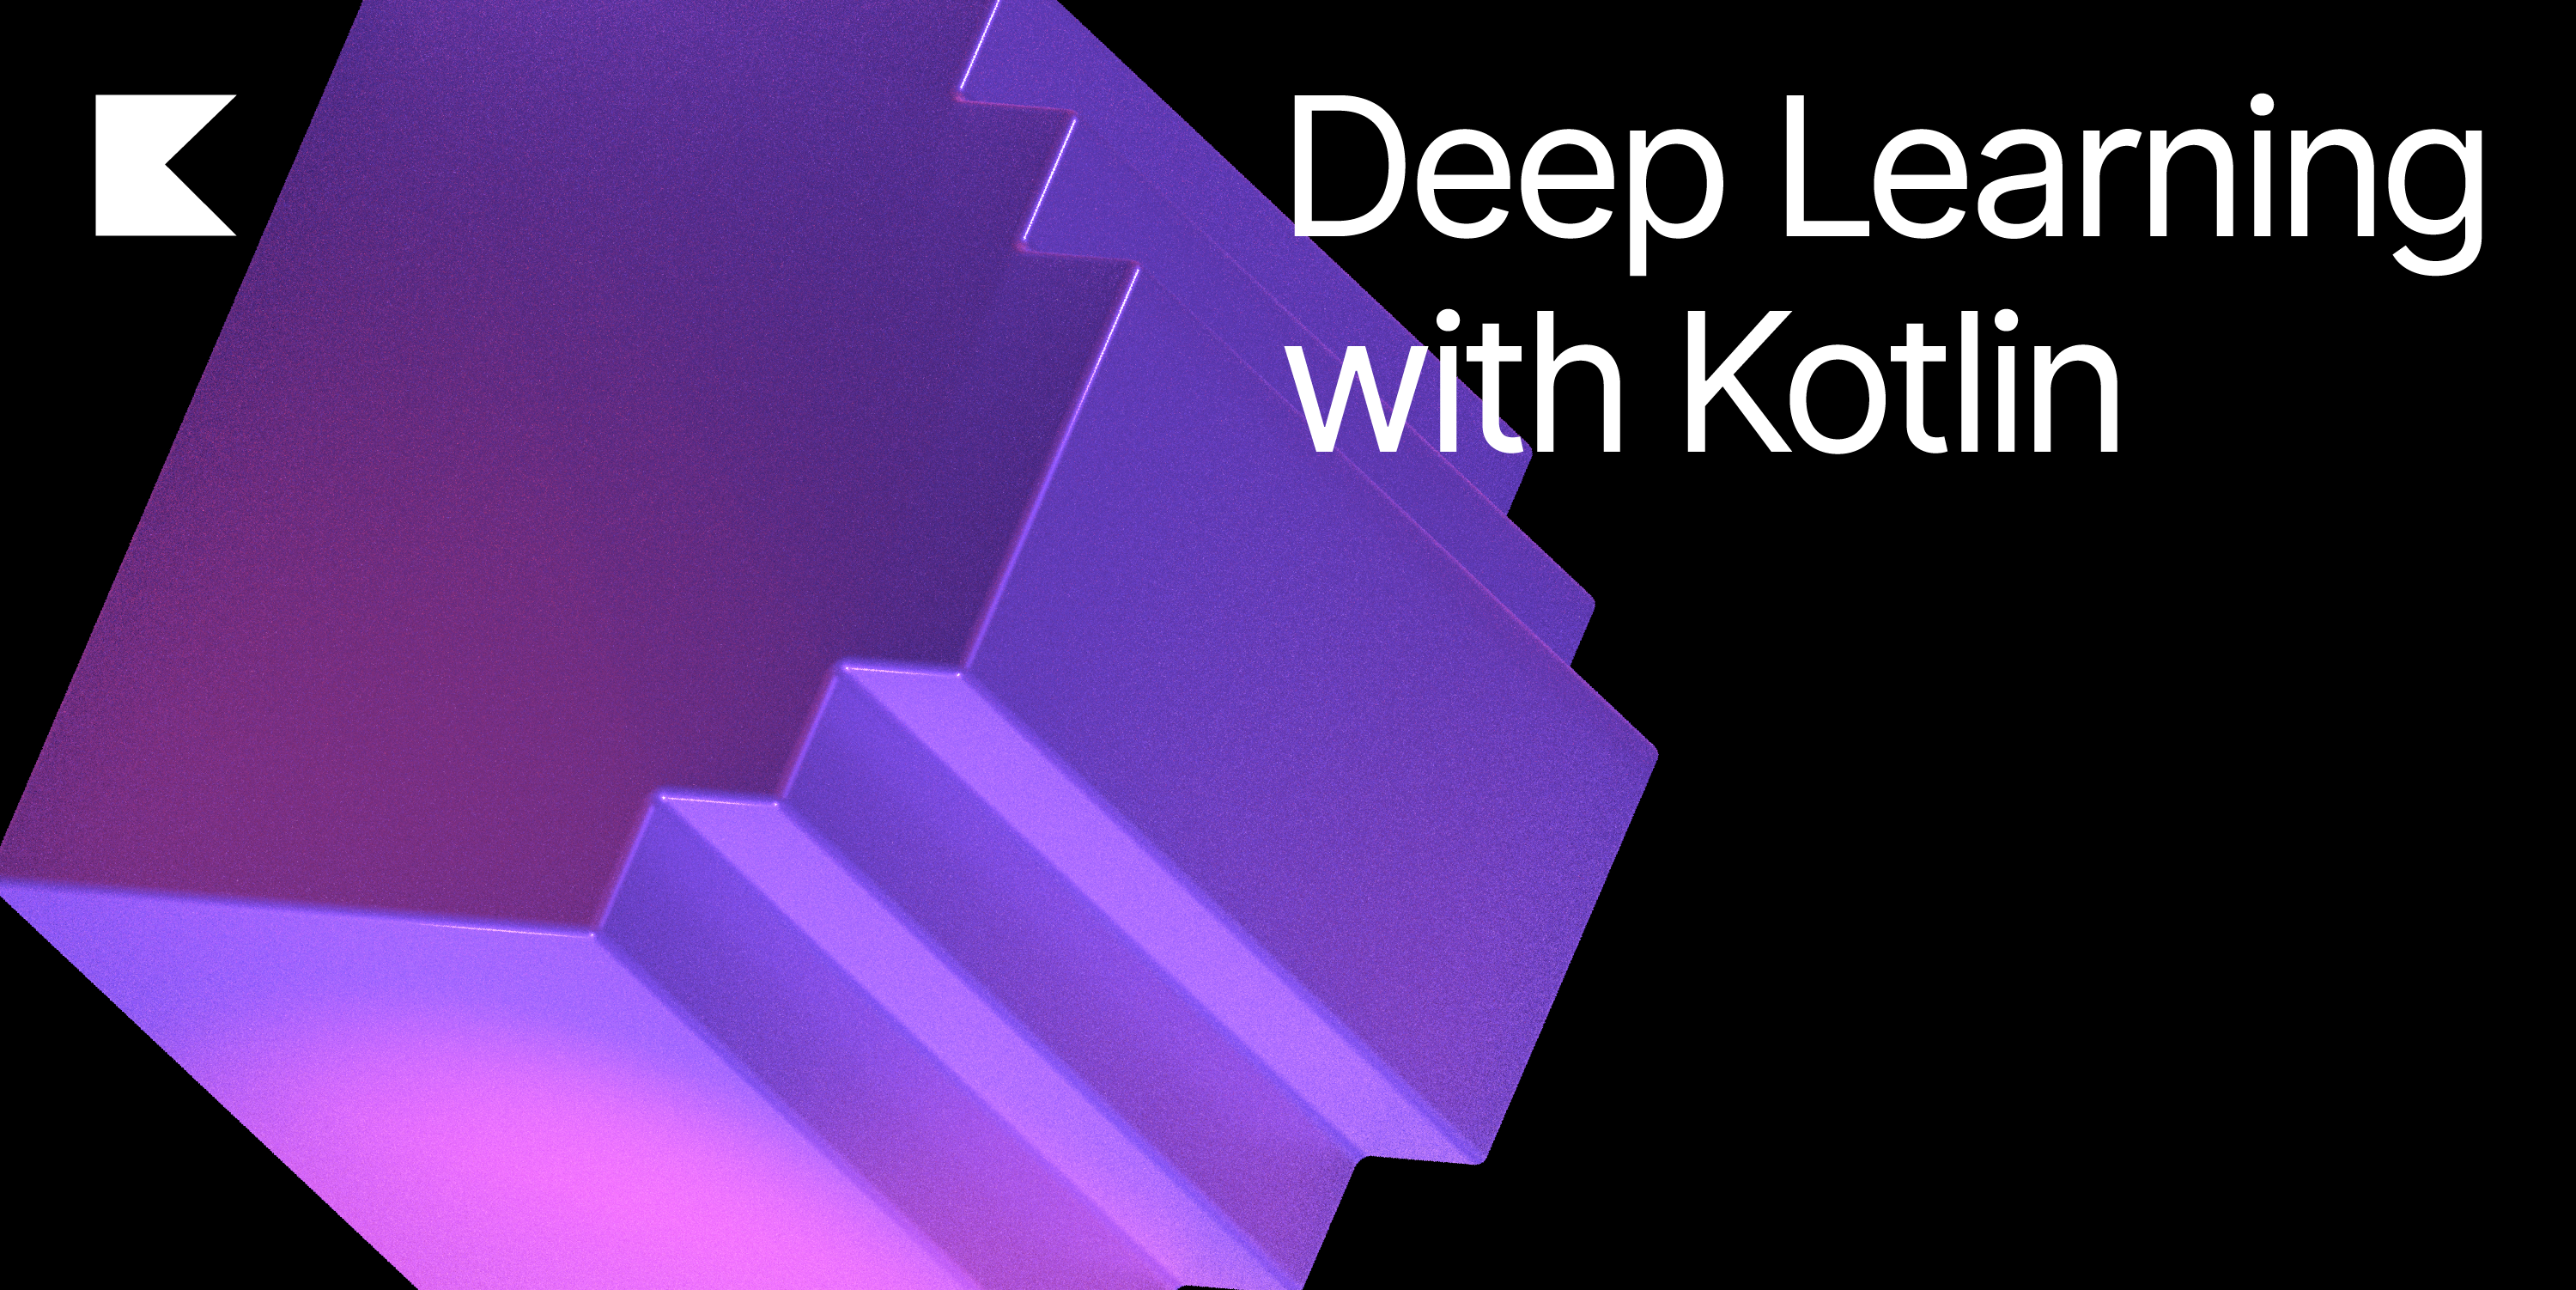 Deep Learning with Kotlin